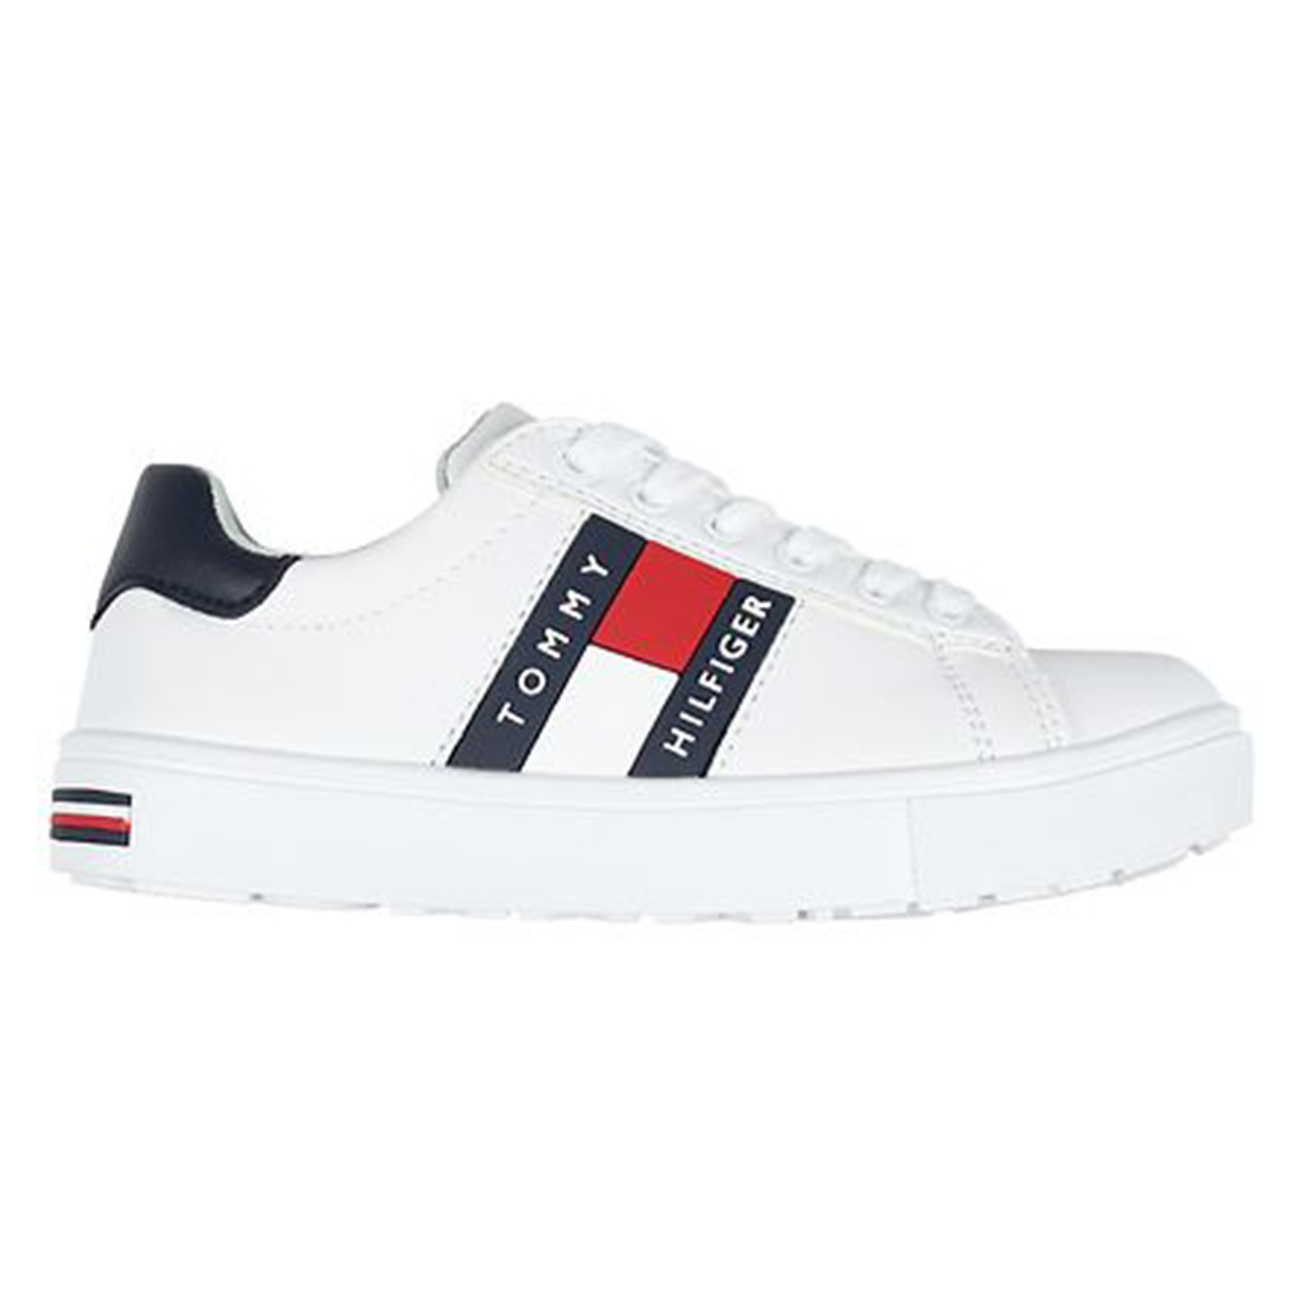 Tommy Hilfiger Low Cut Lace-Up Sneakers White/Blue